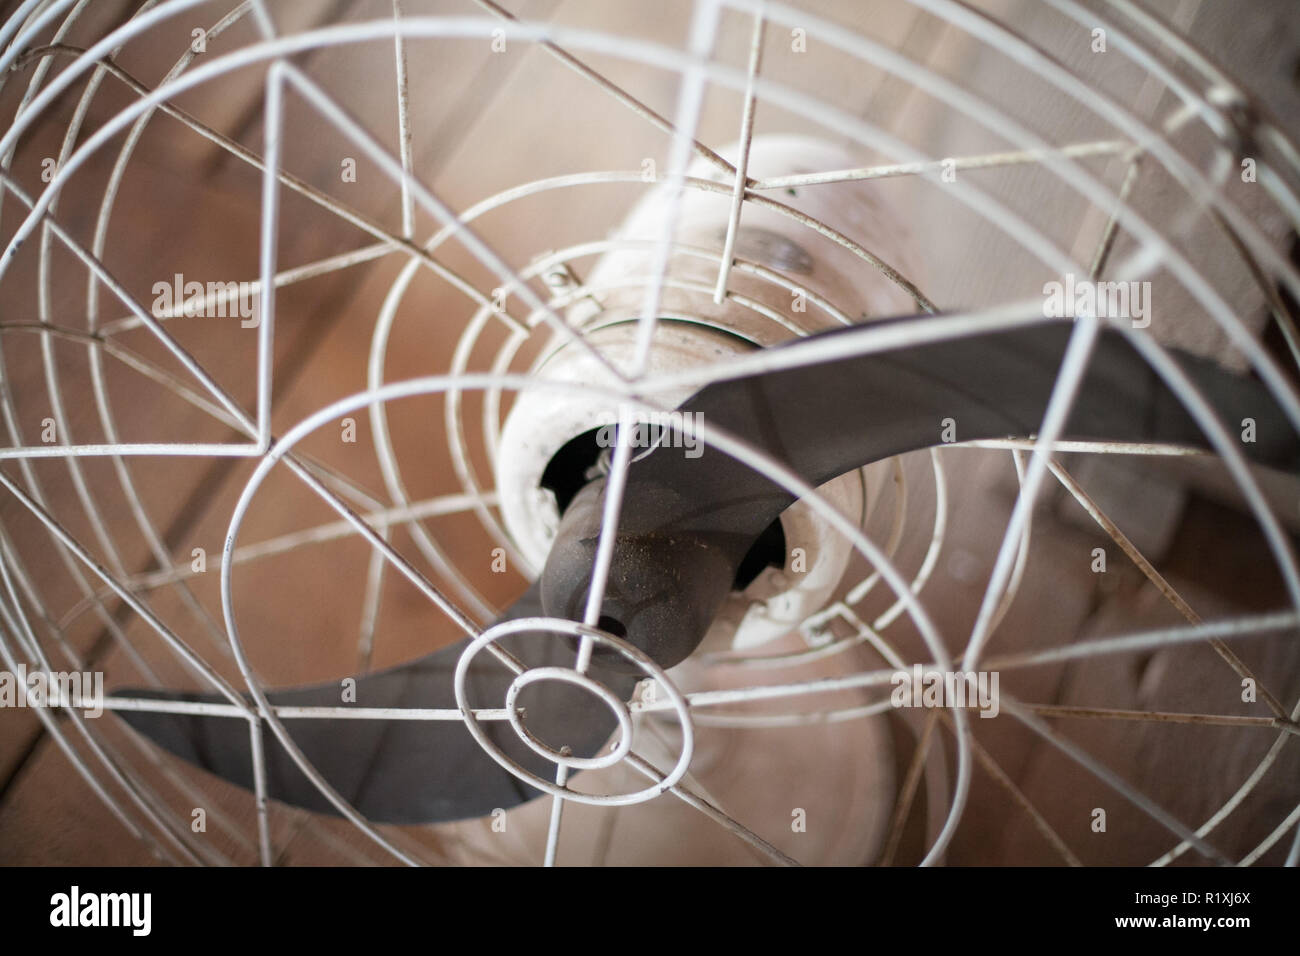 old mid-century metal fan on a wooden farm table - Stock Image